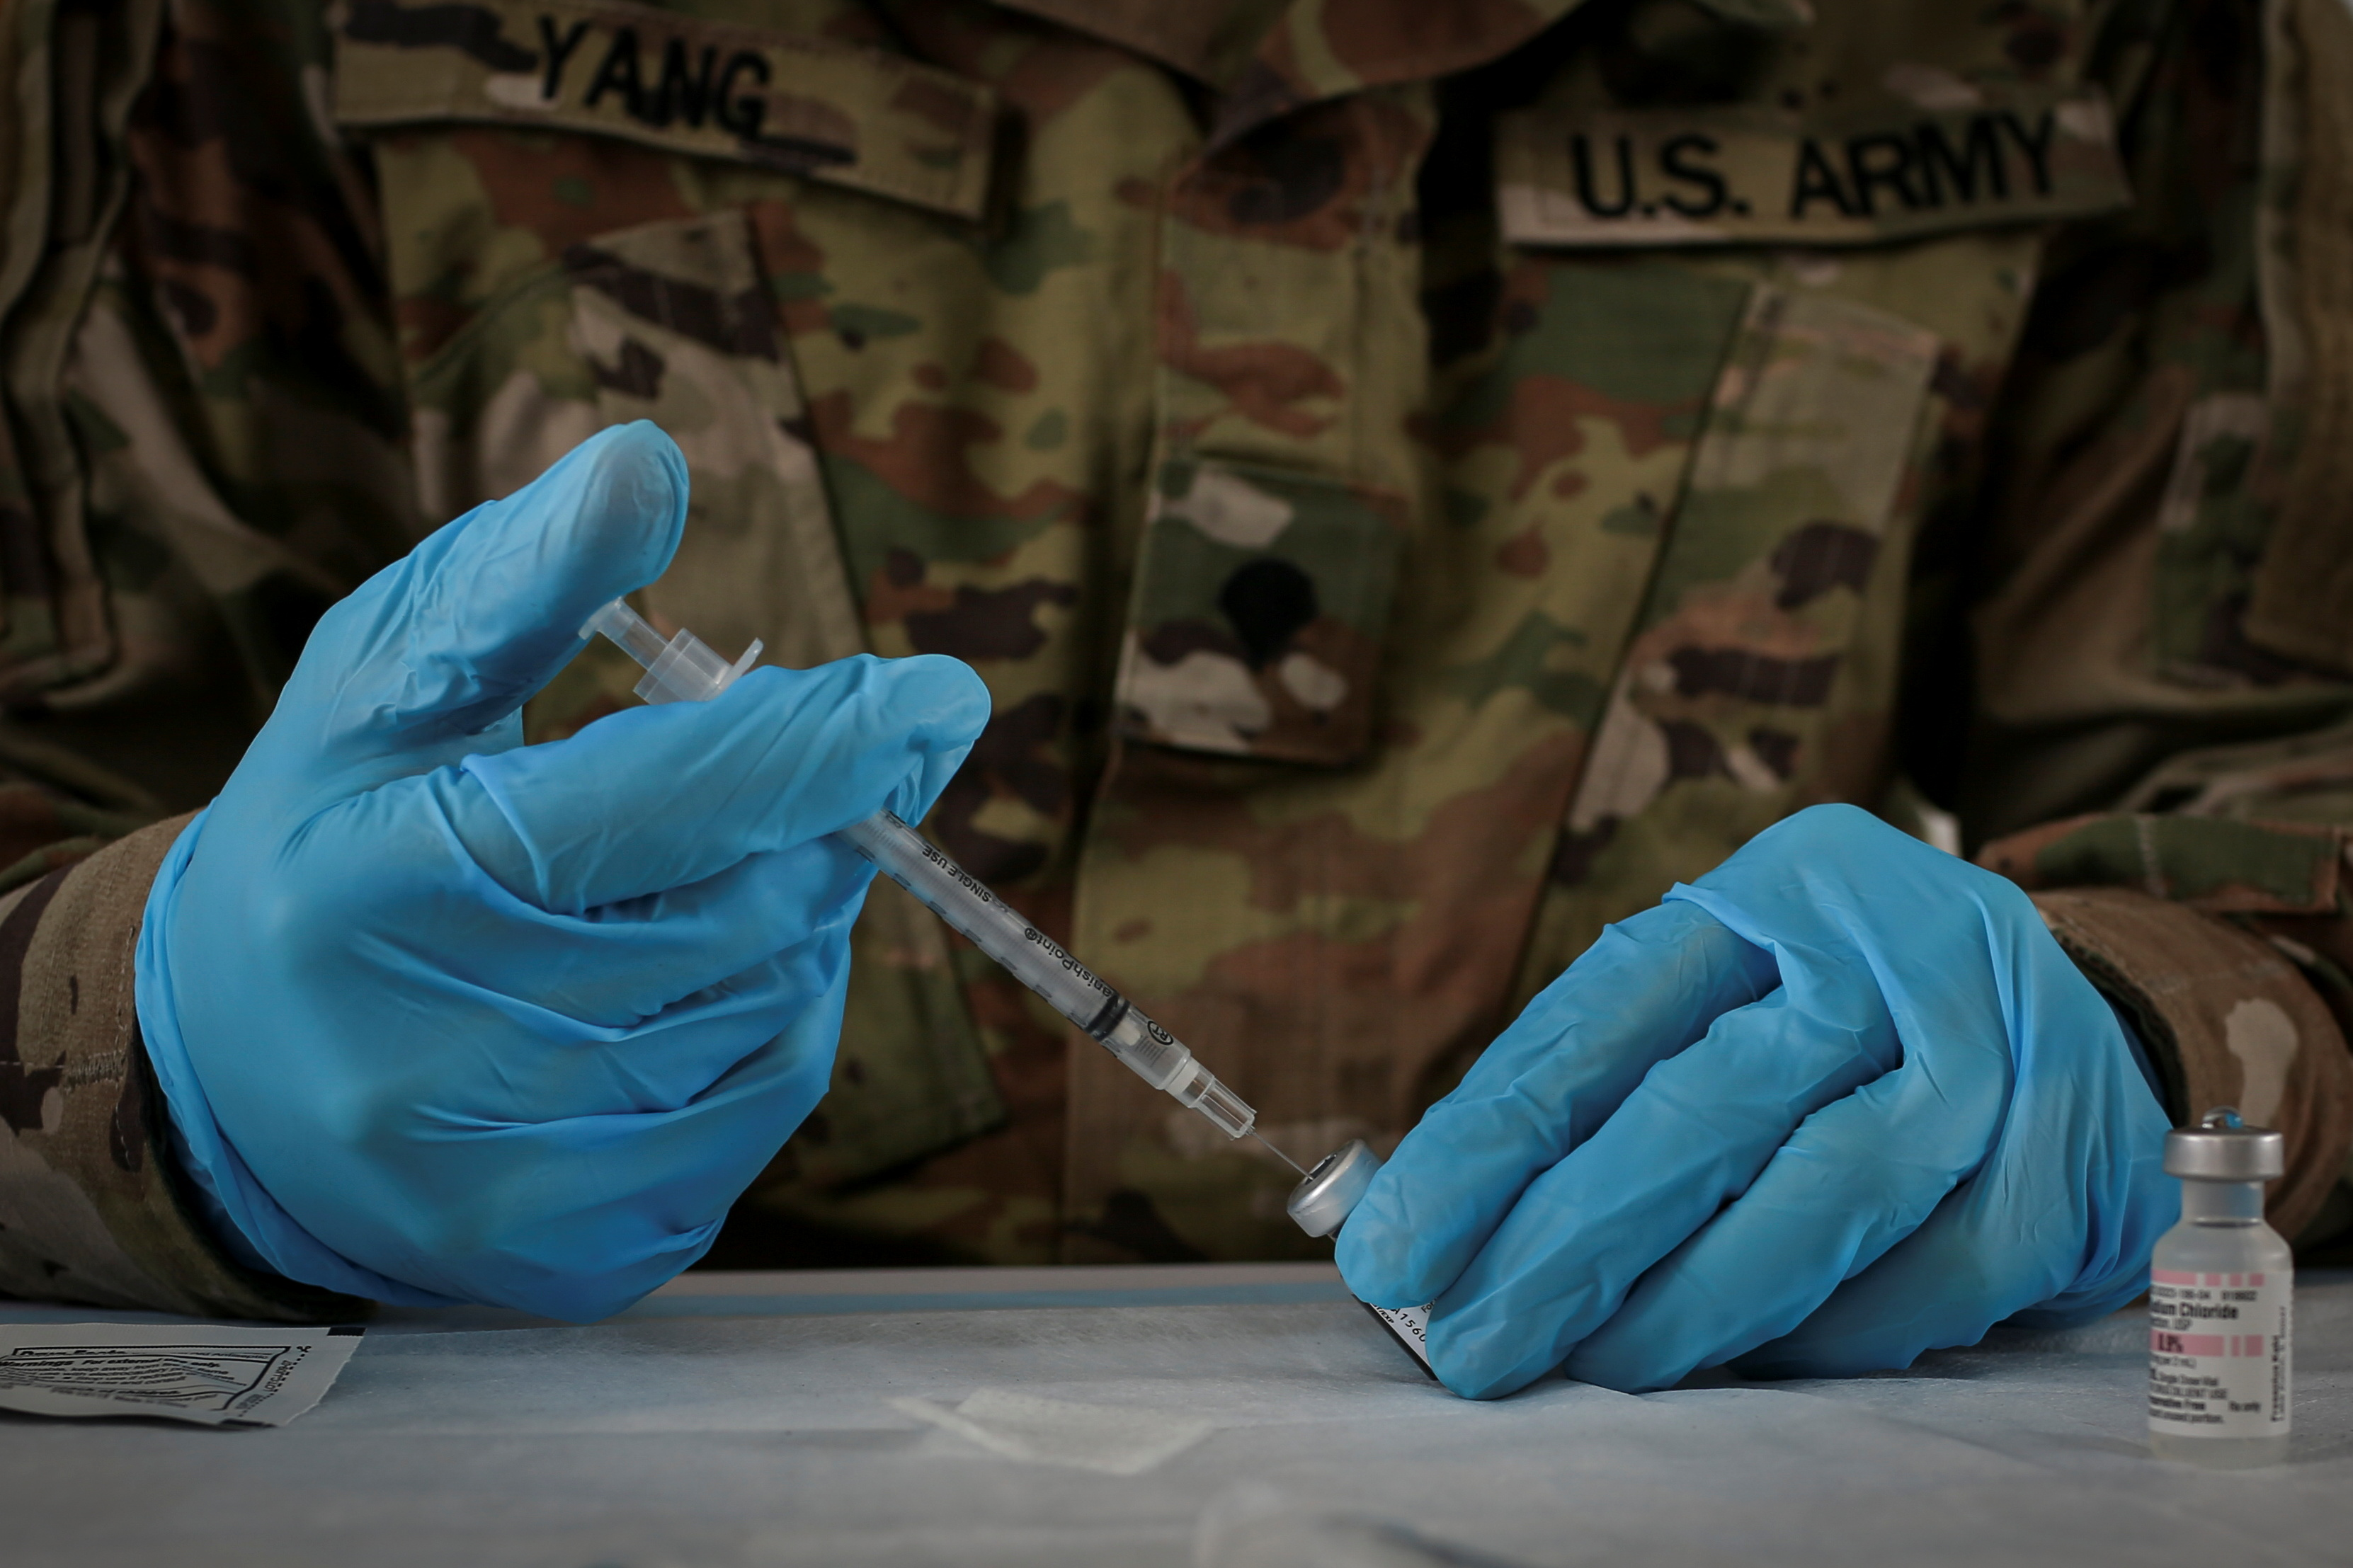 A U.S. Army soldier from the 2nd Armored Brigade Combat Team, 1st Infantry Division, prepares Pfizer coronavirus disease (COVID-19) vaccines to inoculate people in a mass vaccination site supported by the federal government at the Miami Dade College North Campus in Miami, Florida, U.S., March 10, 2021. REUTERS/Marco Bello